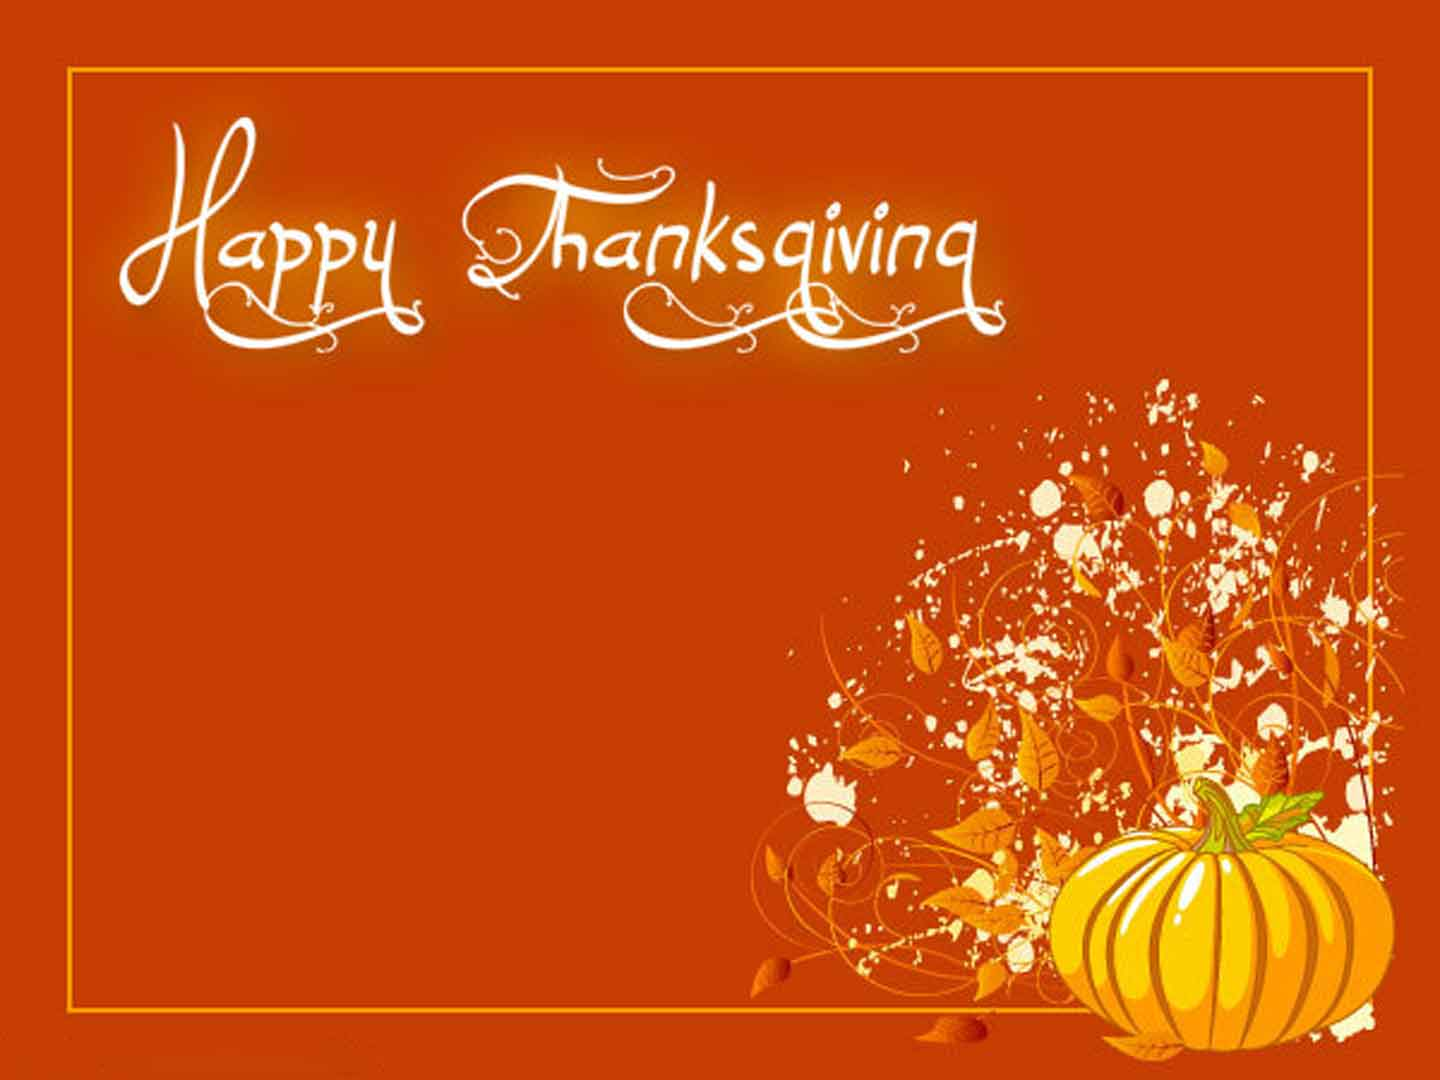 Thanksgiving Wallpaper BBTcom 1440x1080